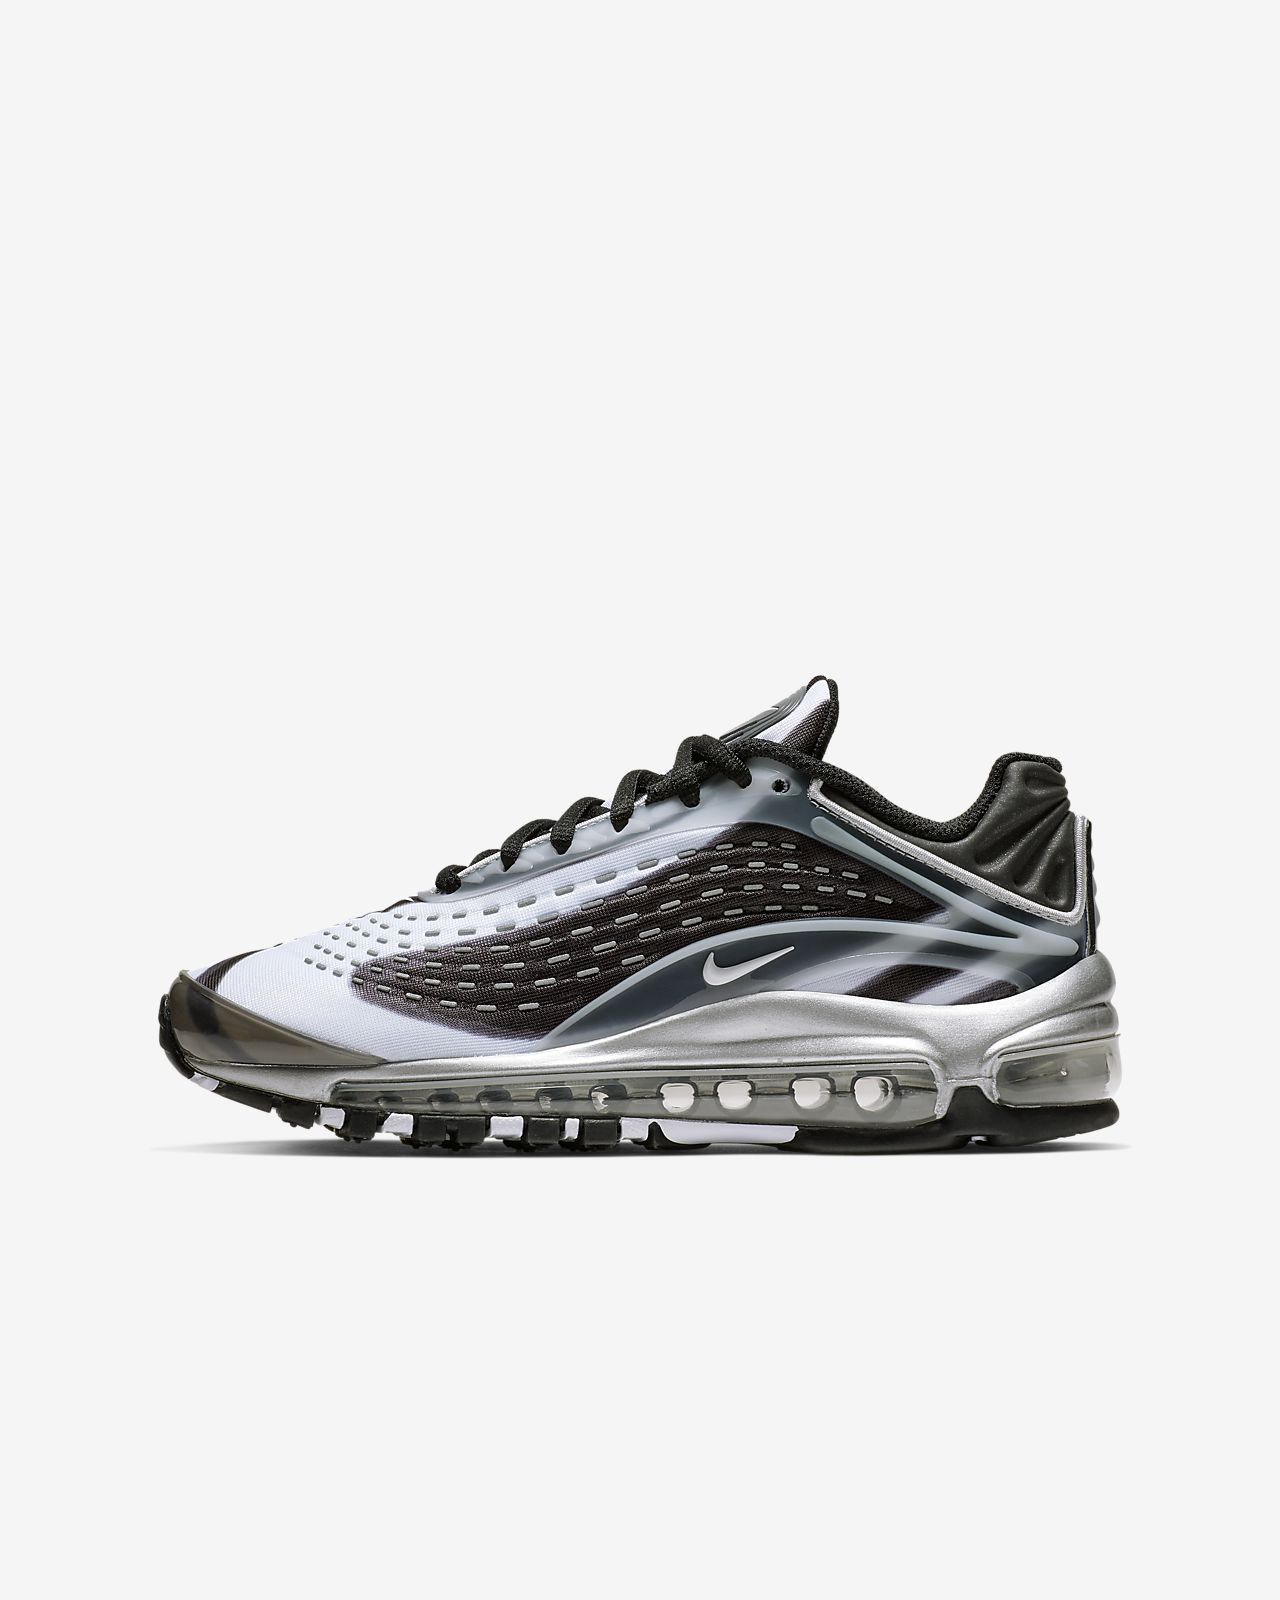 san francisco 1e49a 36261 ... Nike Air Max Deluxe Big Kids  Shoe